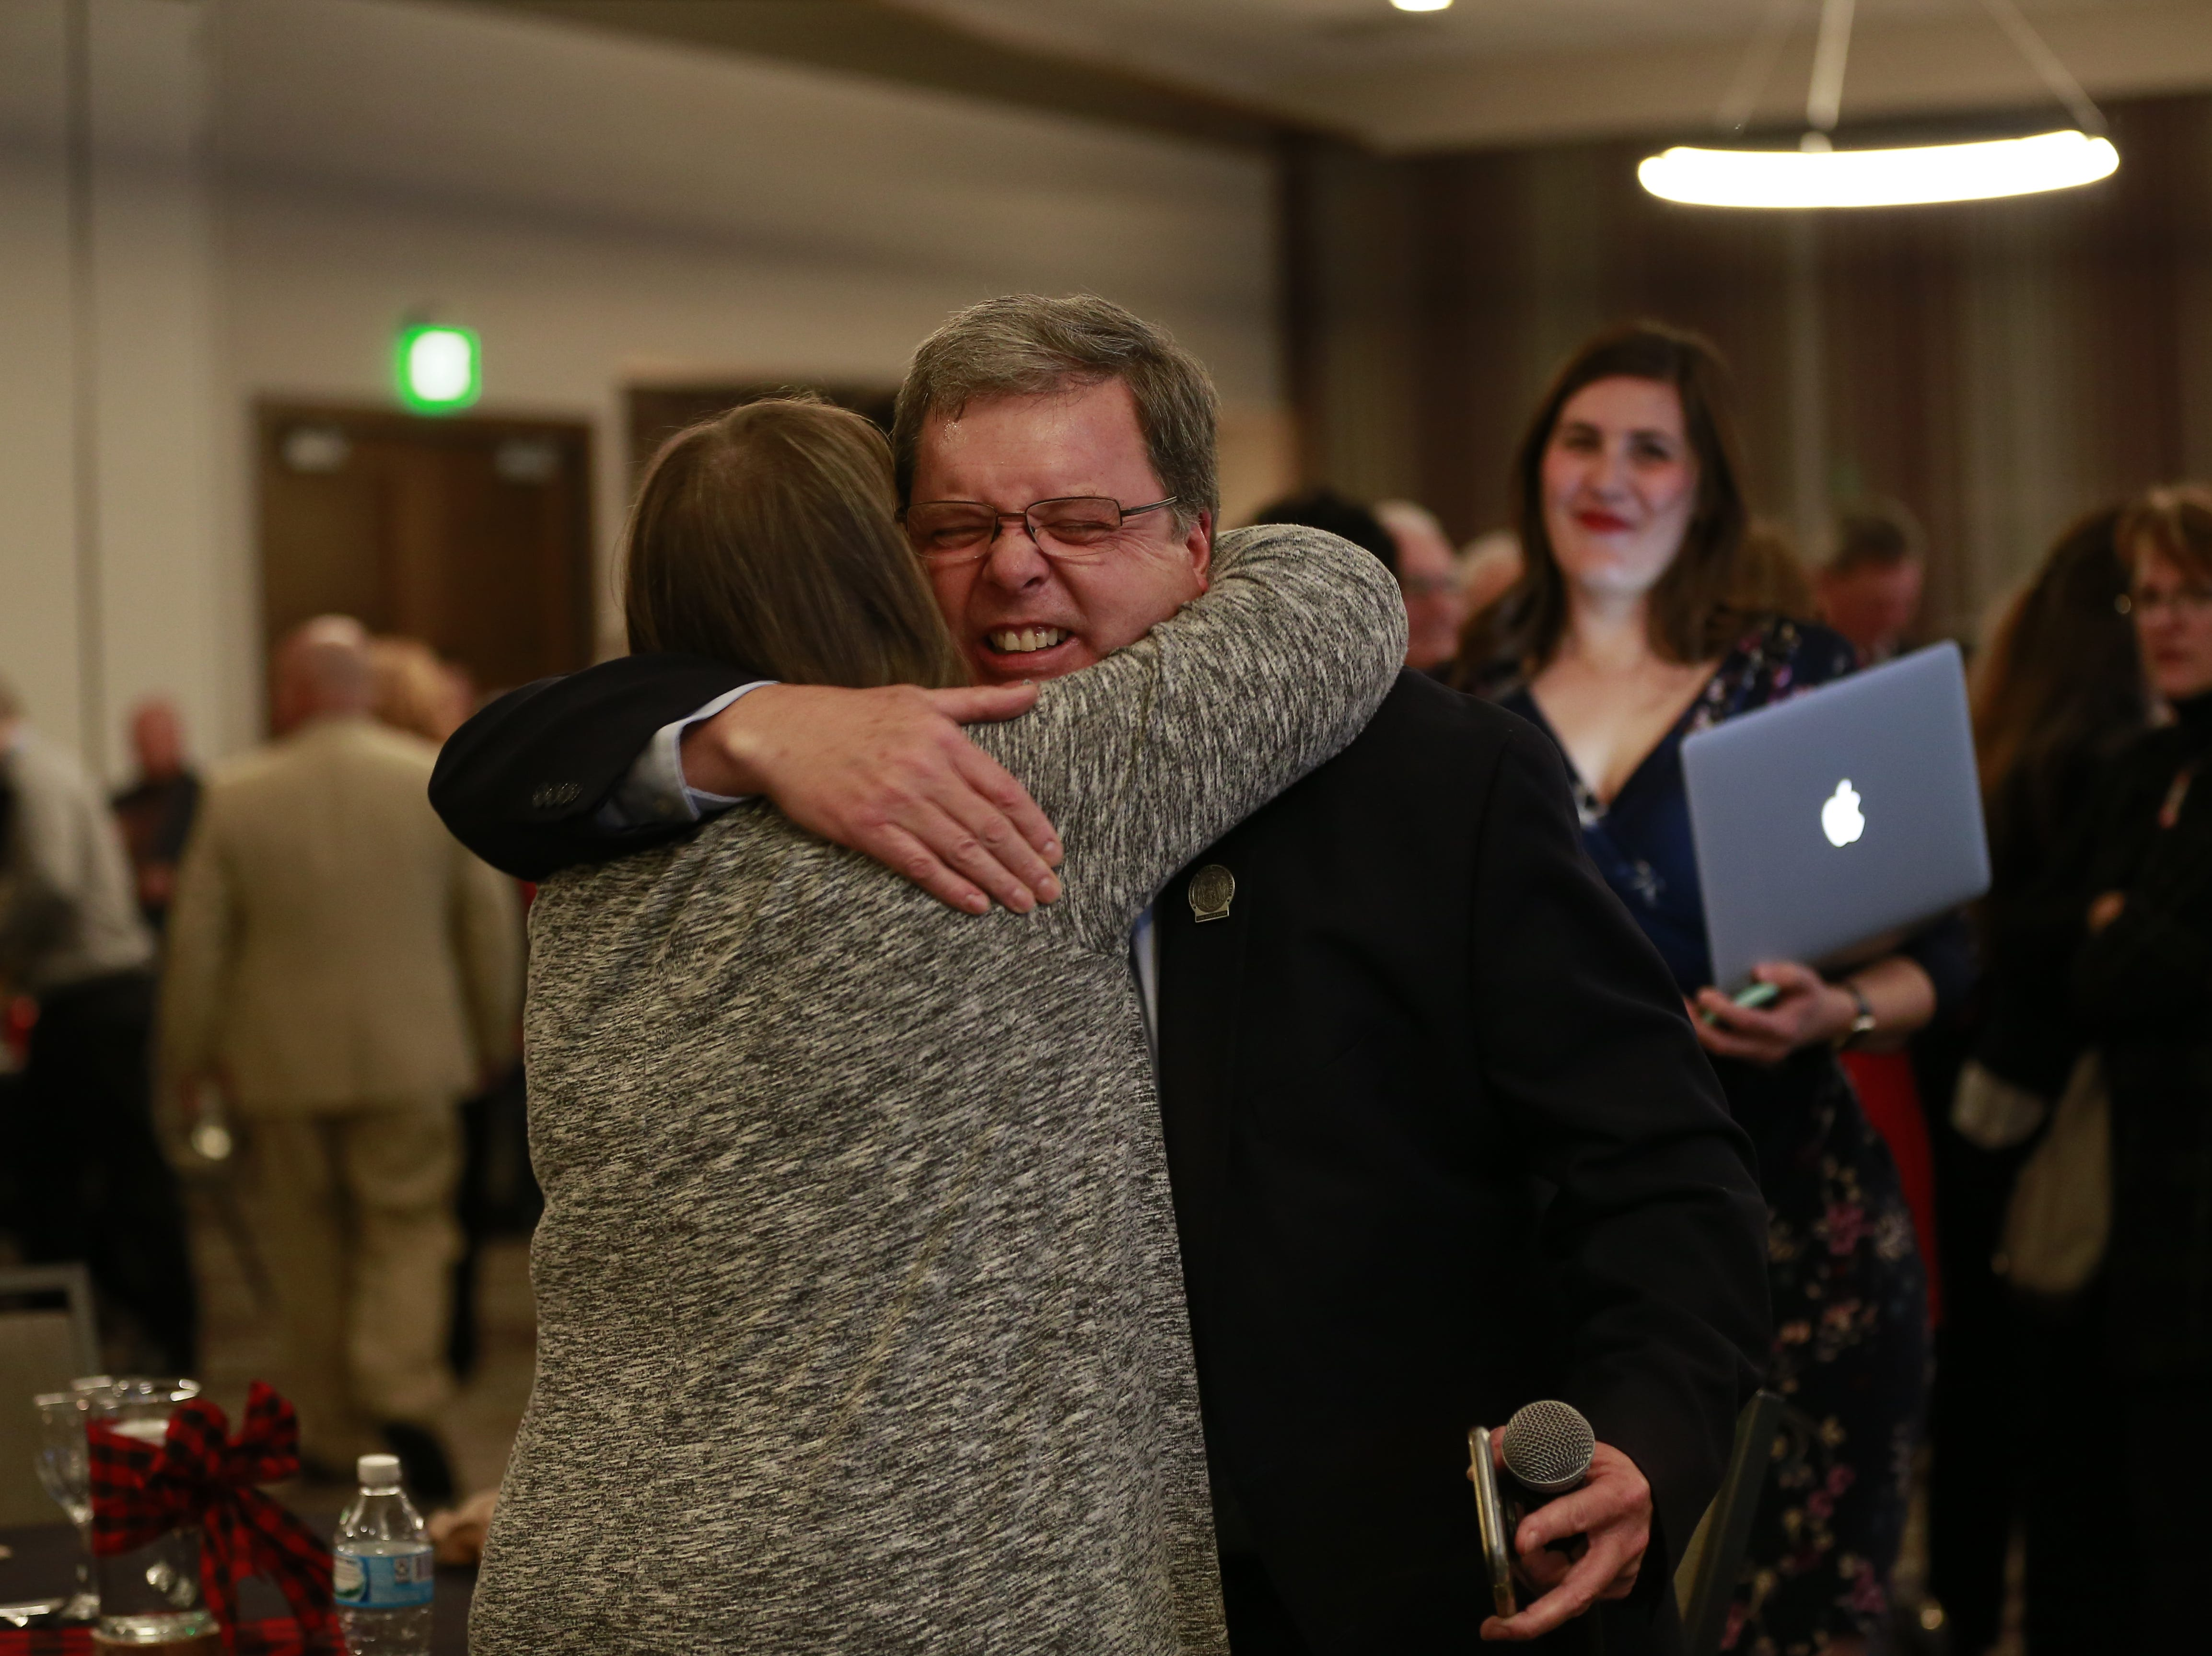 Republican Patrick Snyder receives a congratulatory hug from his wife Shawn for another term as the 85th Assembly District Tuesday, Nov. 7, 2018, at Hilton Garden Inn in Wausau, Wis. T'xer Zhon Kha/USA TODAY NETWORK-Wisconsin